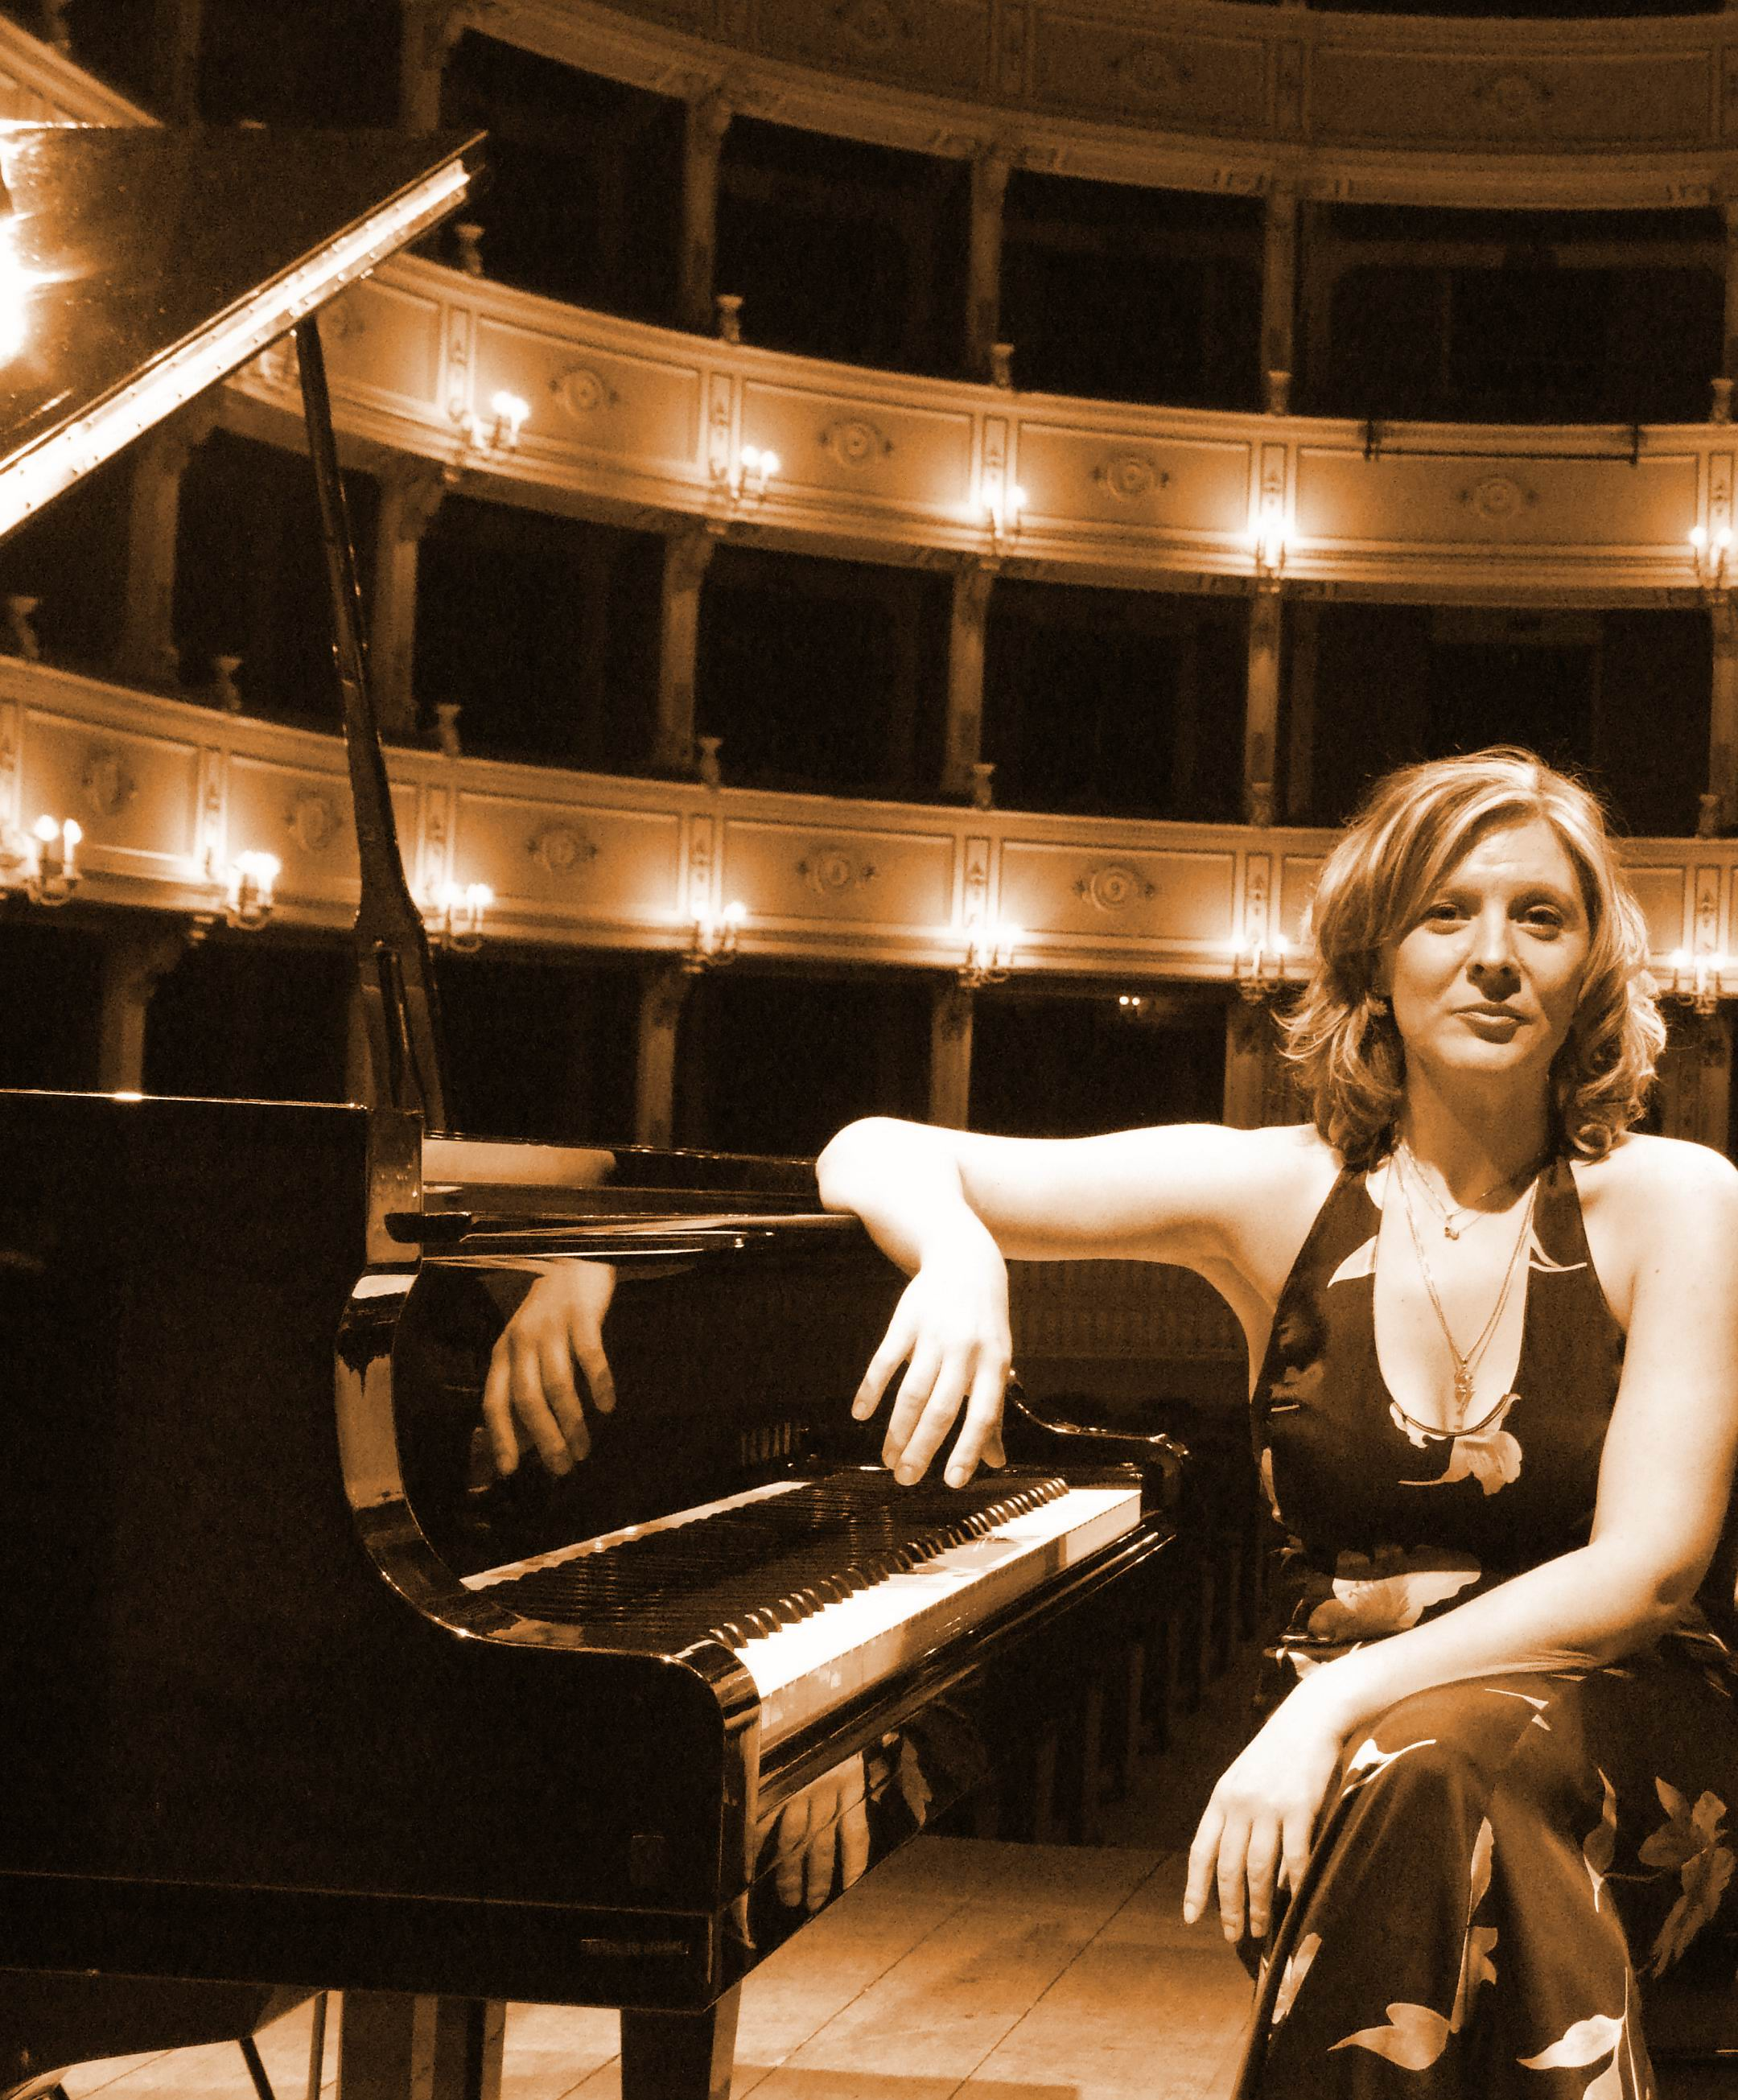 Chiara evento top con The Pianist